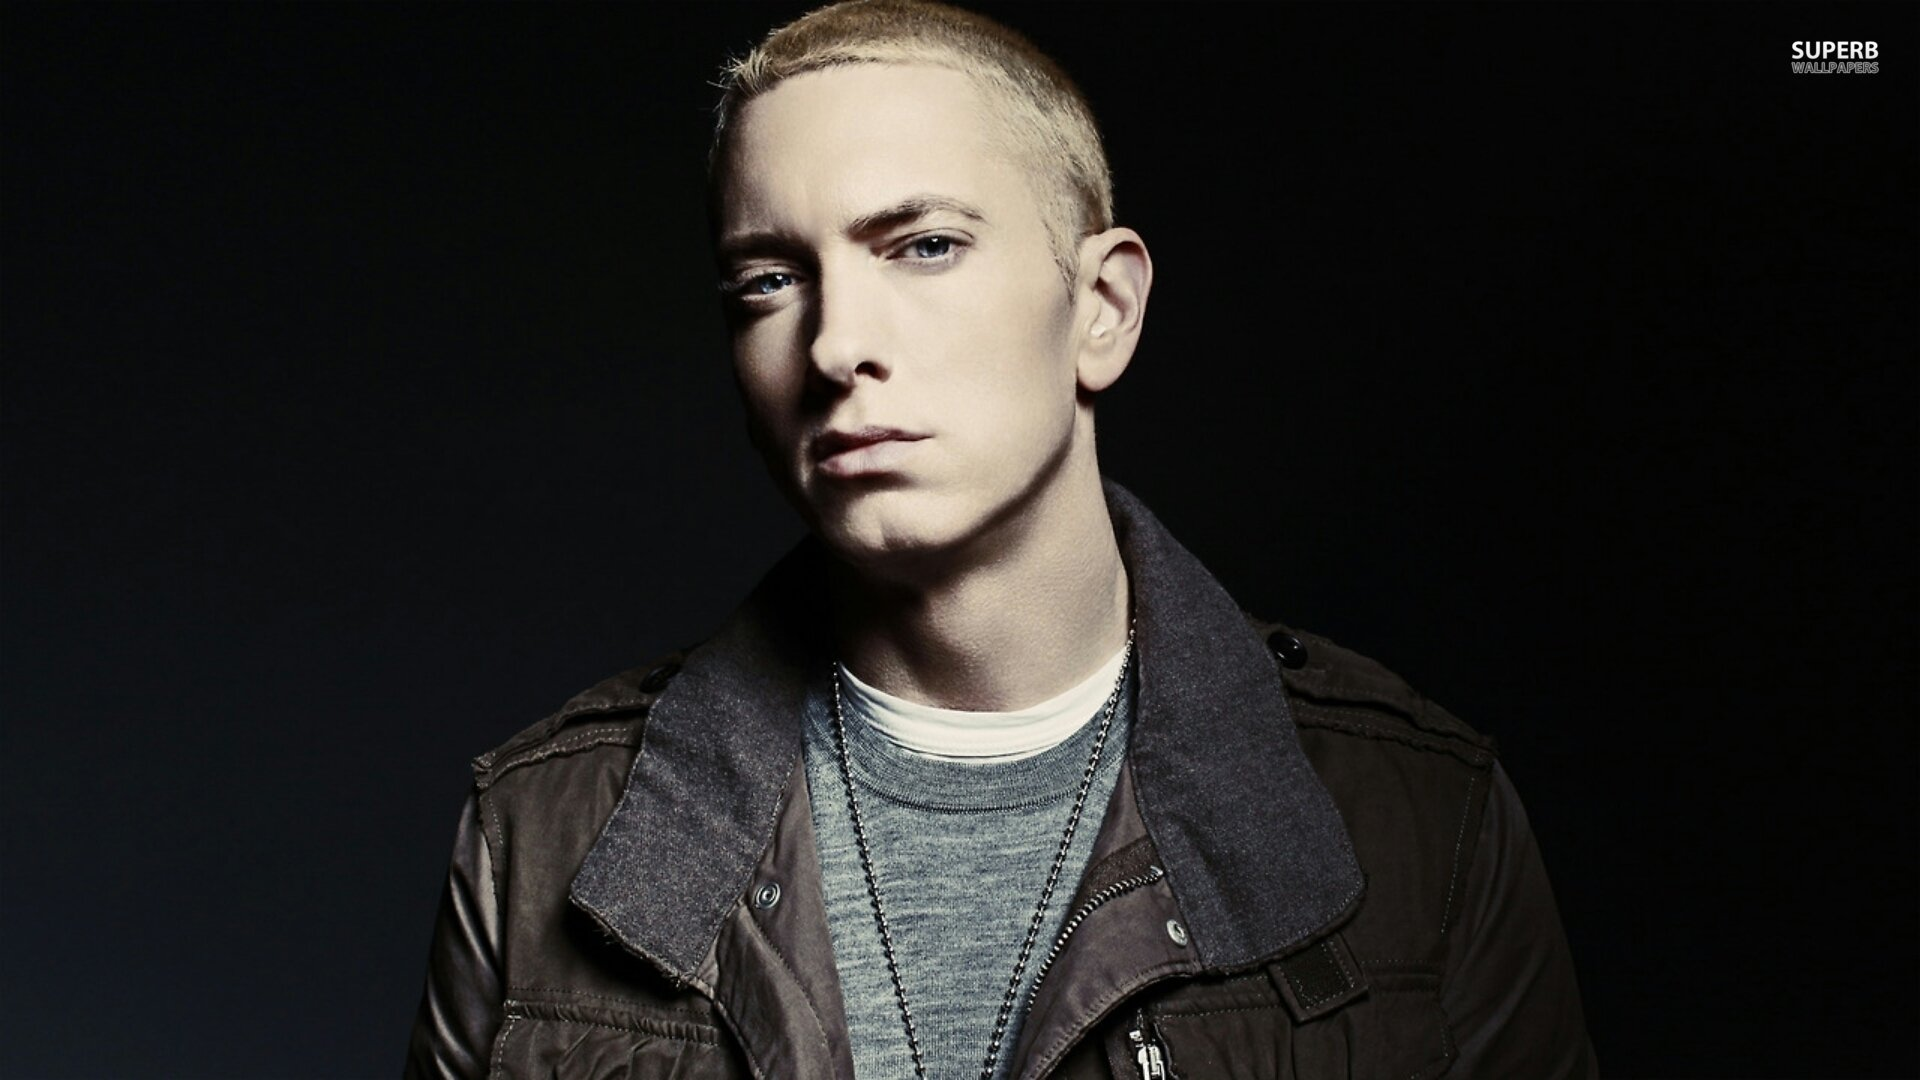 Free Eminem High Quality Wallpaper ID452188 For Hd 1920x1080 Desktop